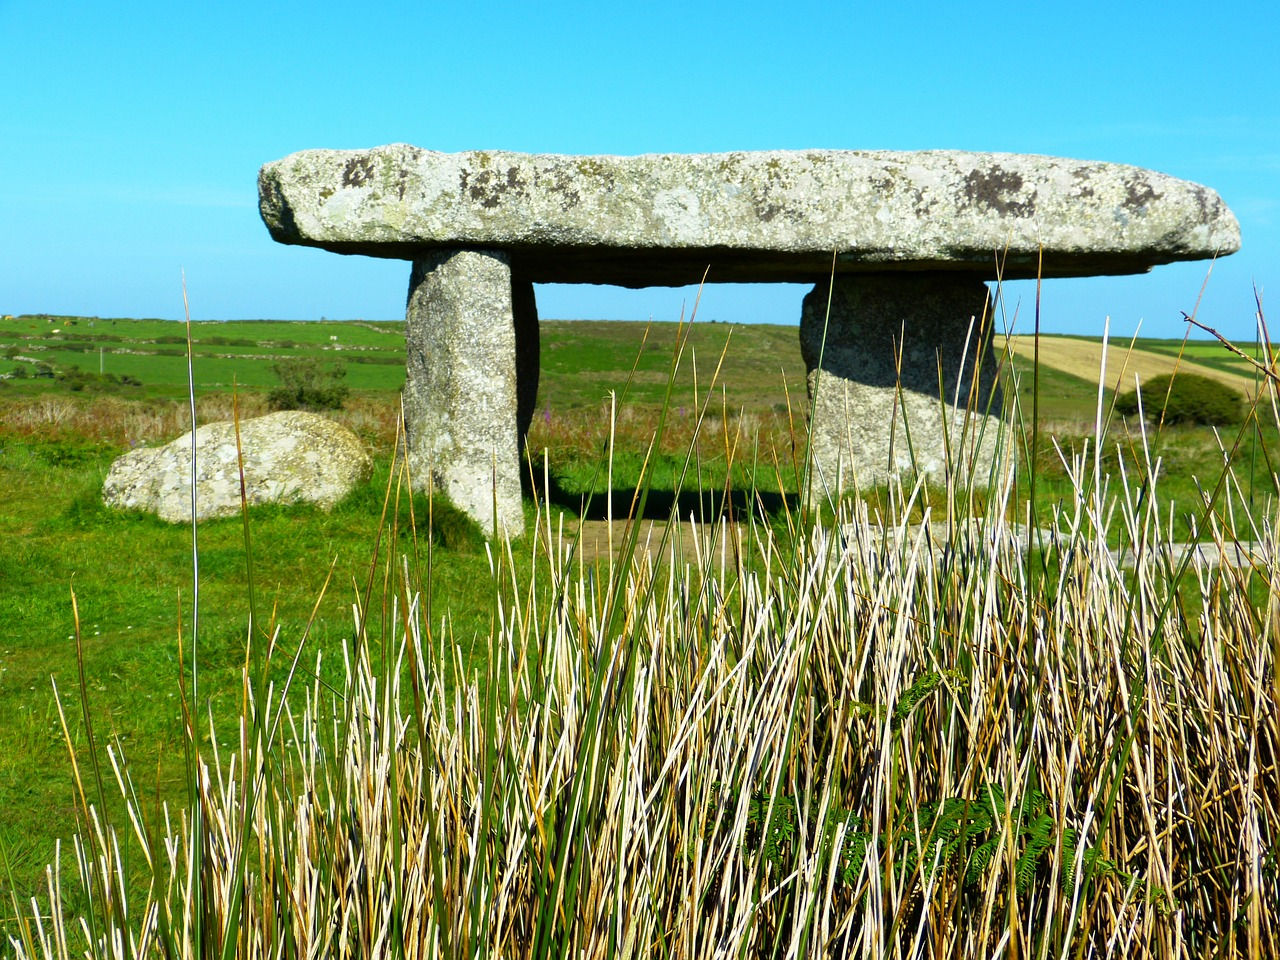 lanyon quoit quoit giant's giant's table free photo